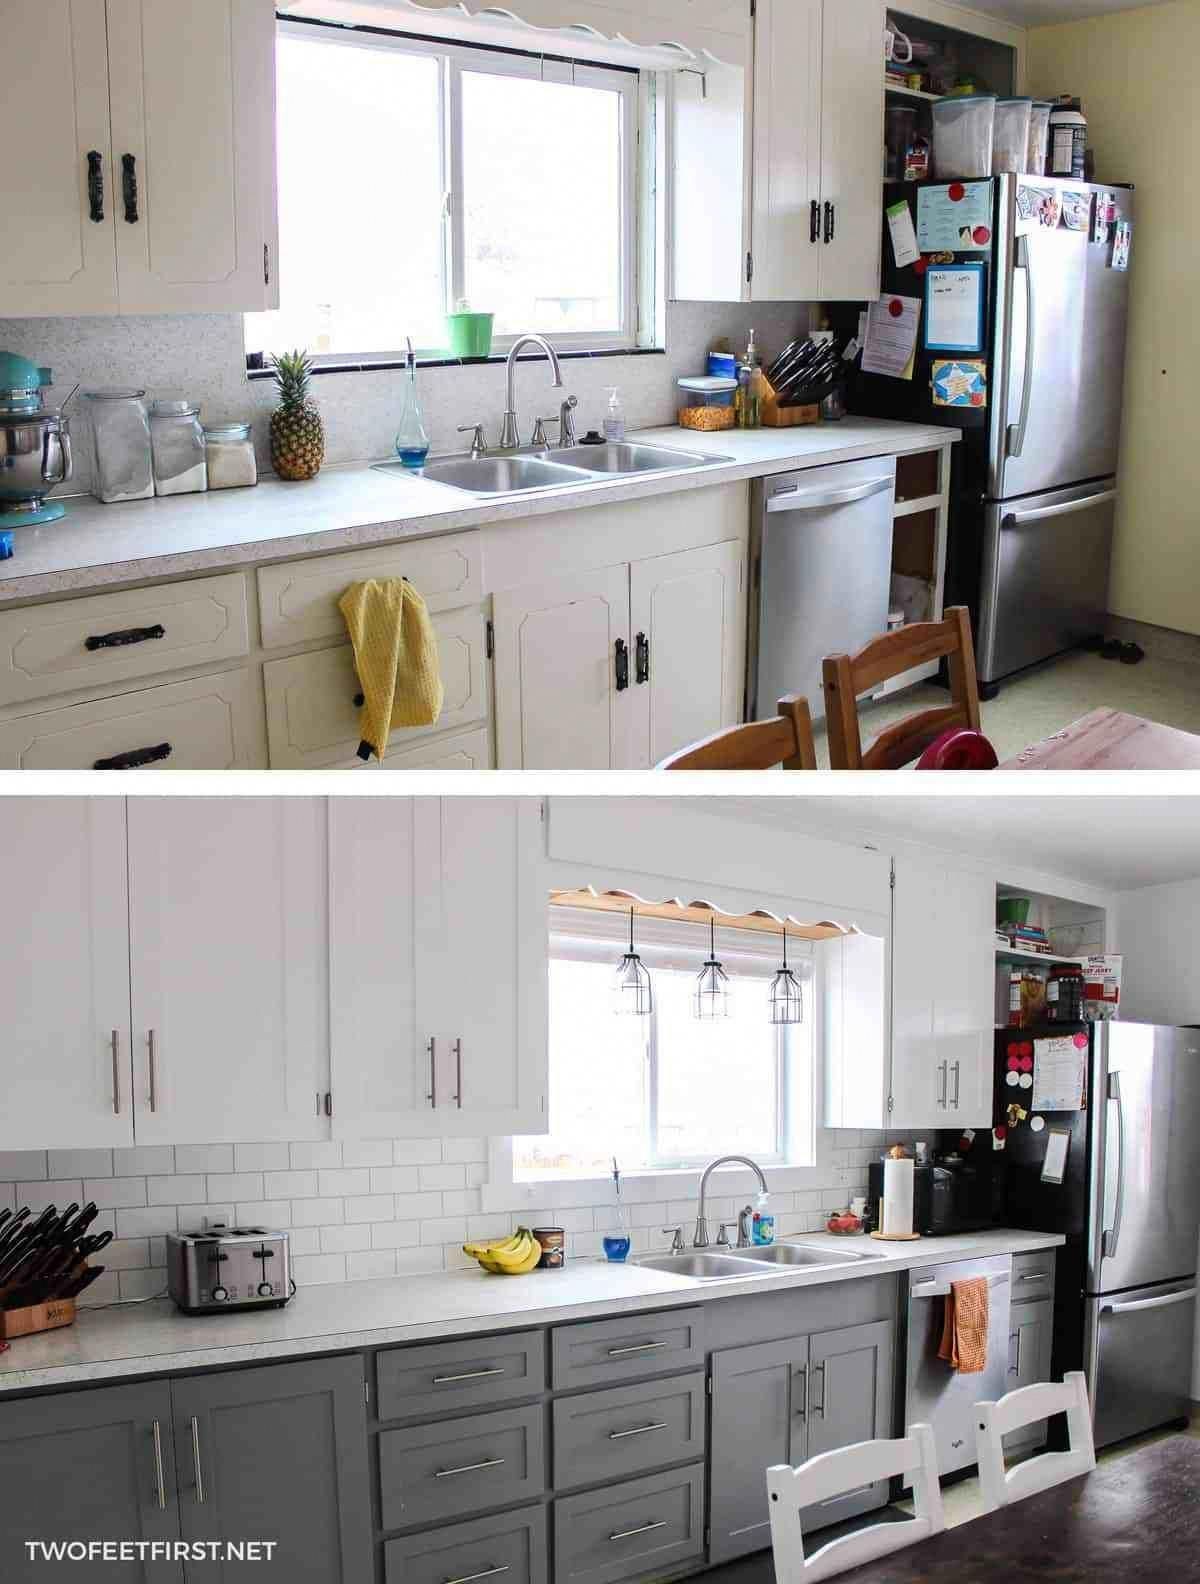 3 panel kitchen window  want to update kitchen cabinet without replacing them learn how to